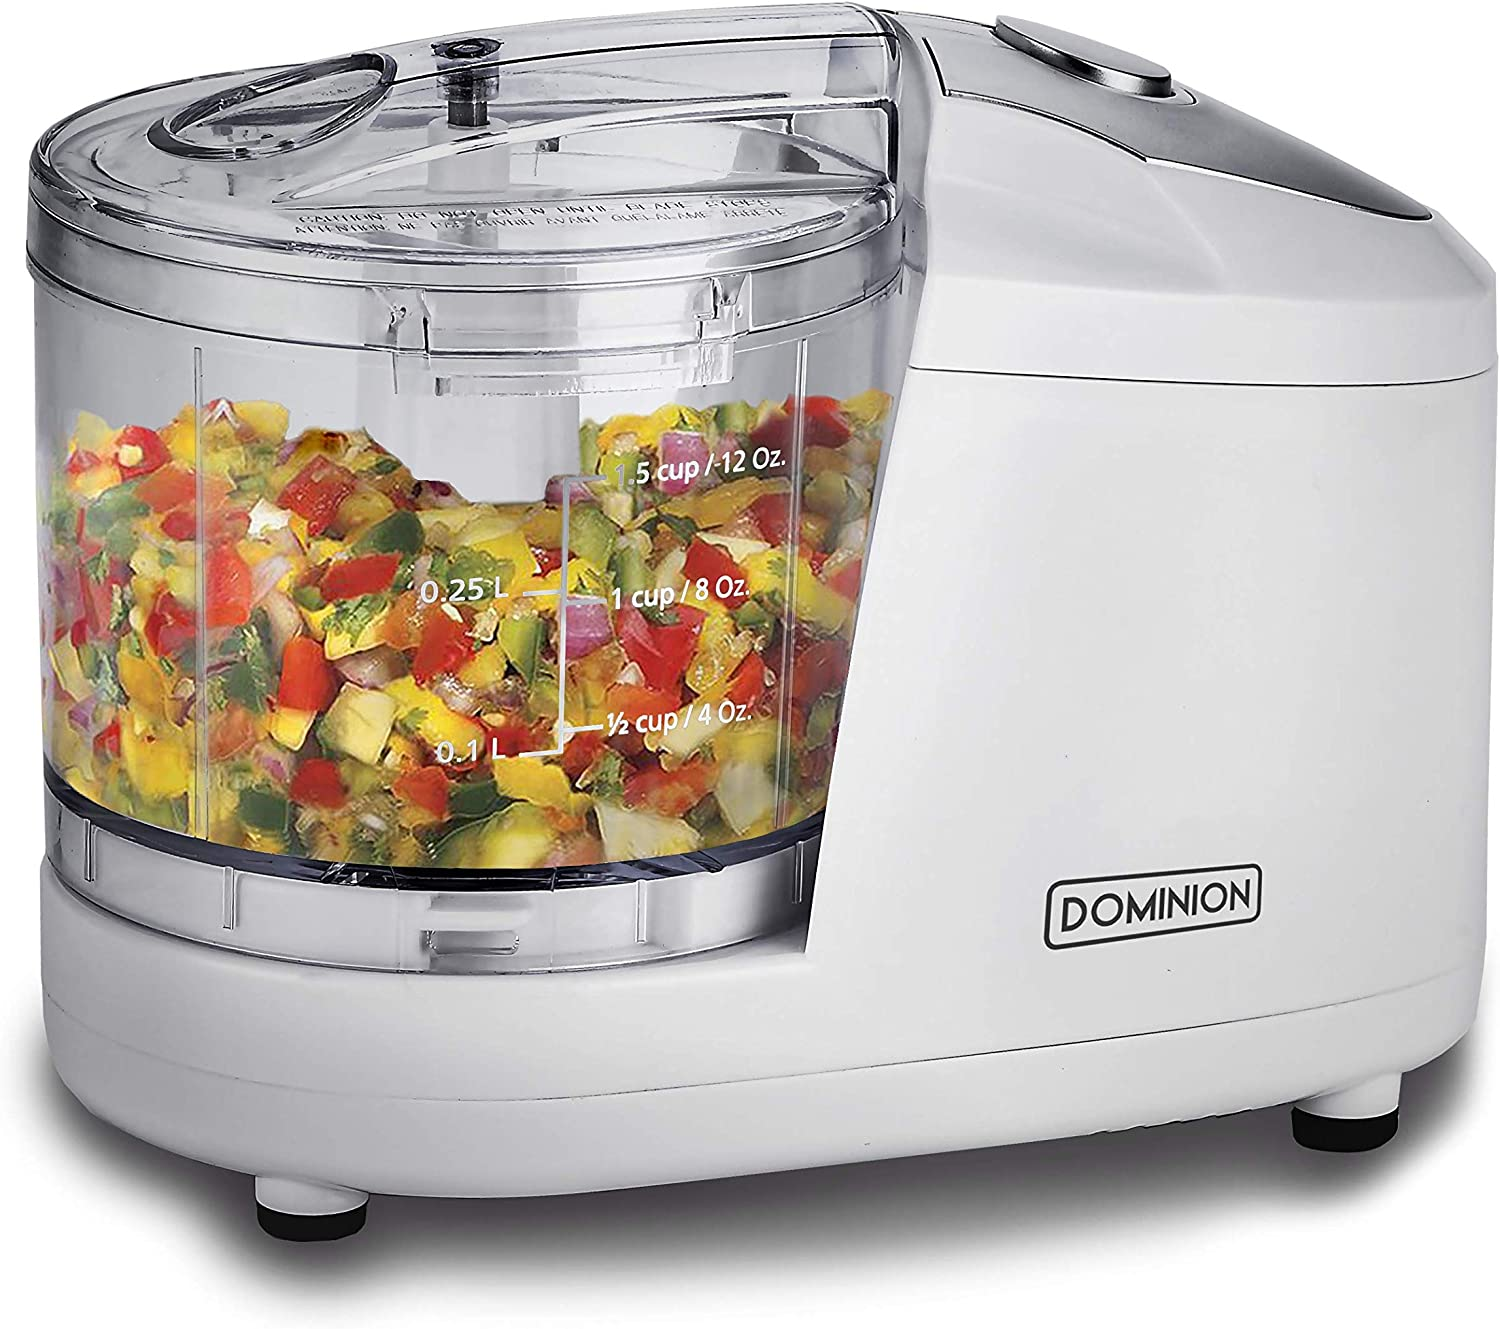 Dominion 1.5 Cup - Electric Mini Food Chopper - Vegetable & Fruit Cutter - Premium Stainless Steel Blades with Safety Lock Cover - One Step/Touch Button - Non-Skid Rubber Feet - White